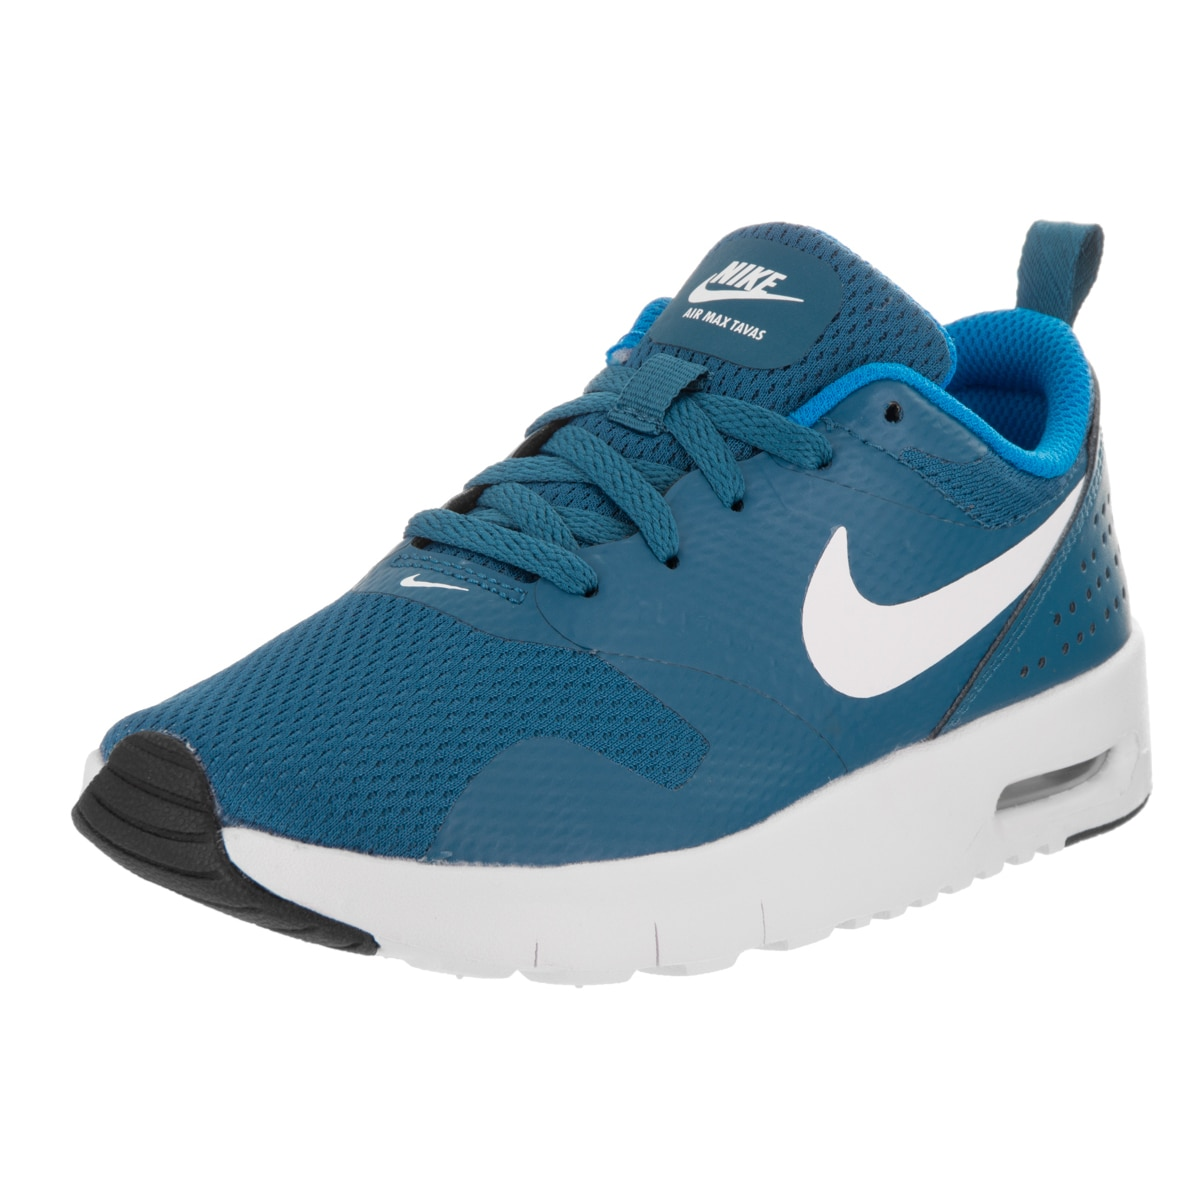 buy popular 10804 ef2ab Shop Nike Kids Air Max Tavas (PS) Running Shoe - Free Shipping Today -  Overstock - 16342776 - 3